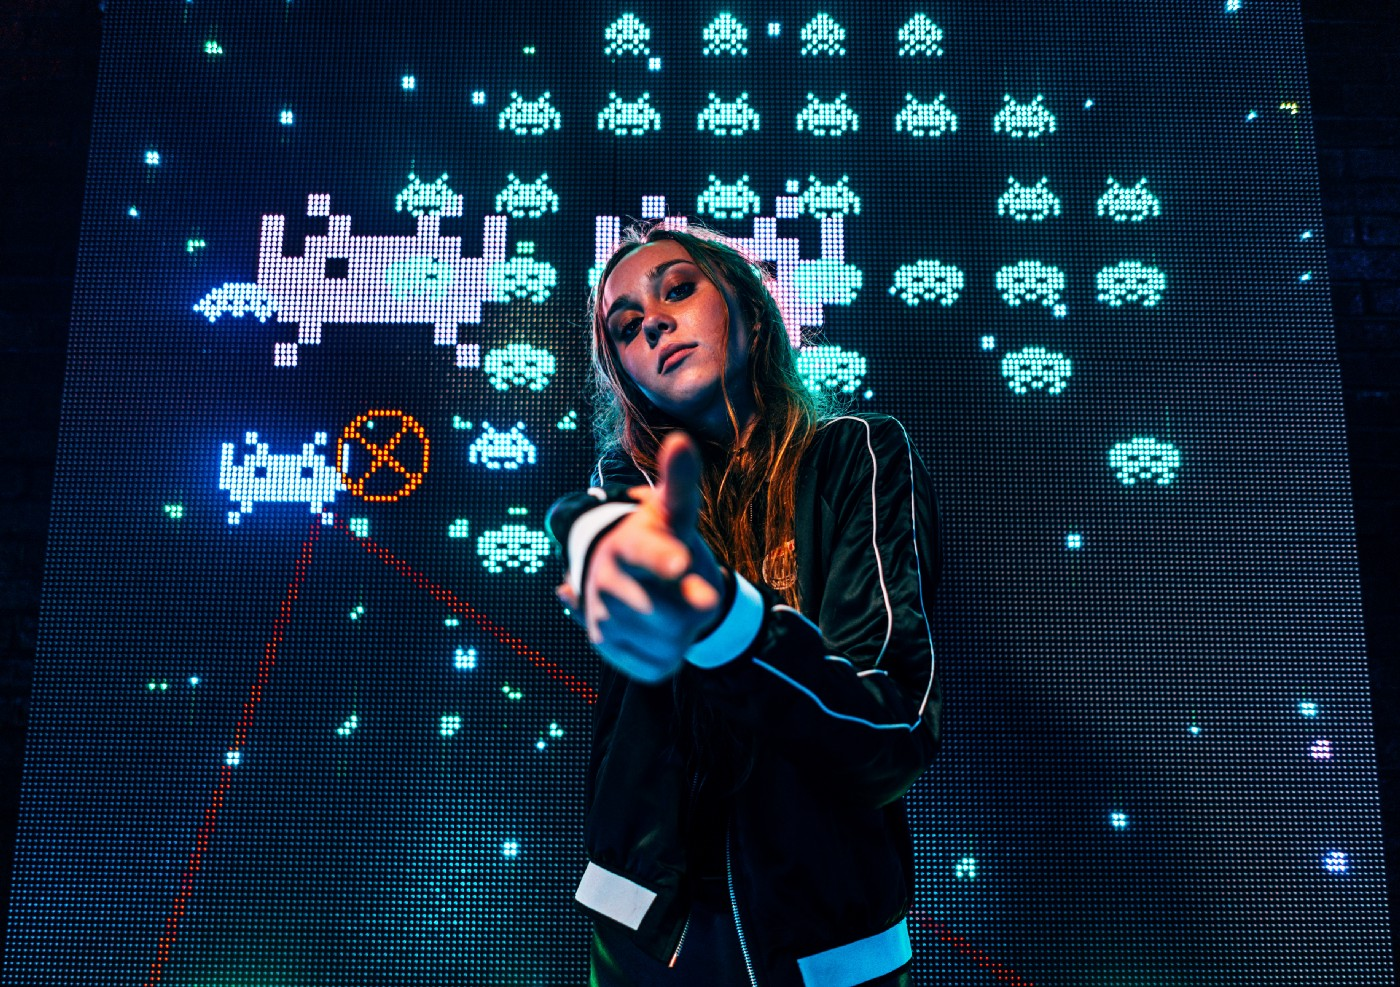 Girl making finger-guns at the camera, standing in front of a screen showing gameplay from 'Space Invaders'